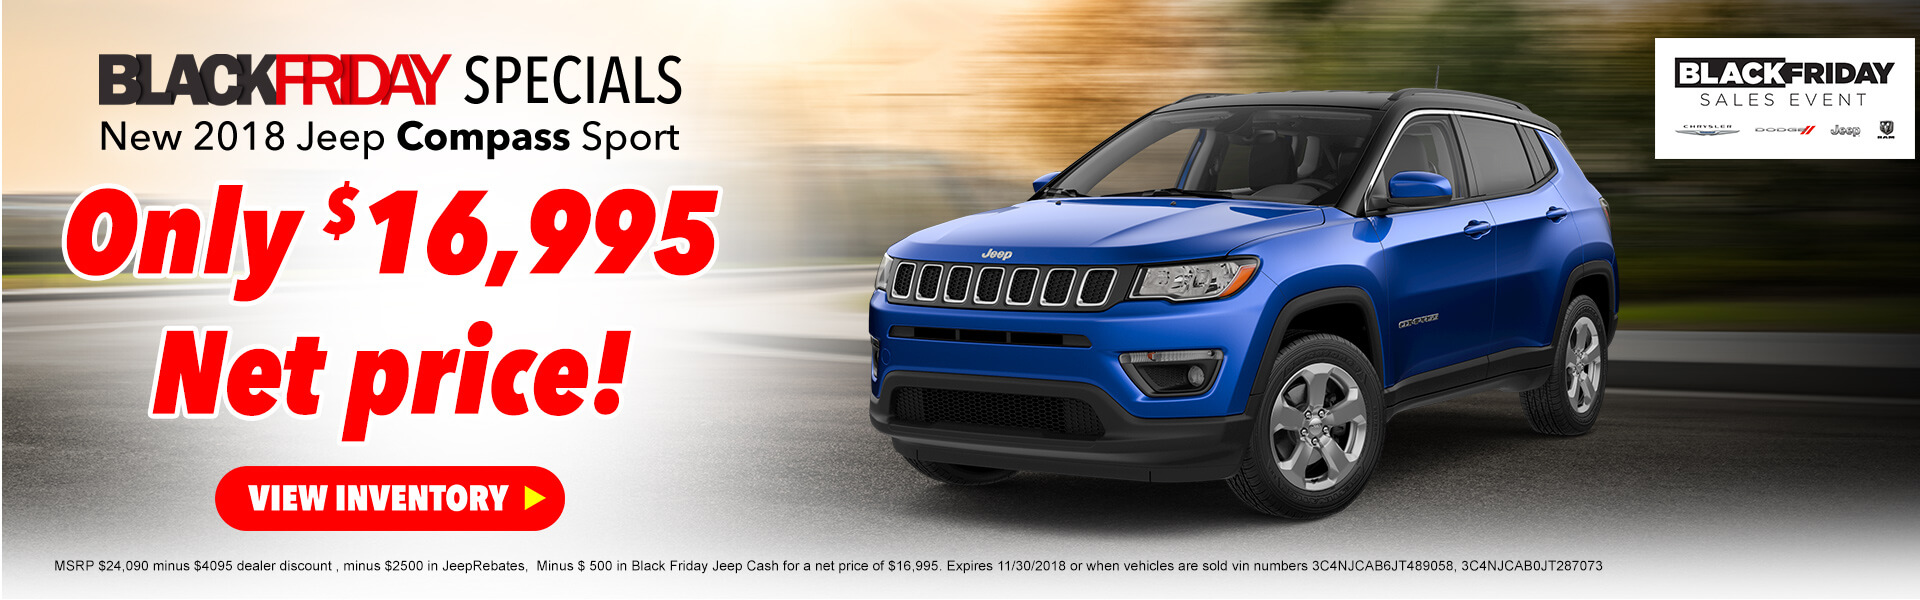 Jeep Compass Purchase